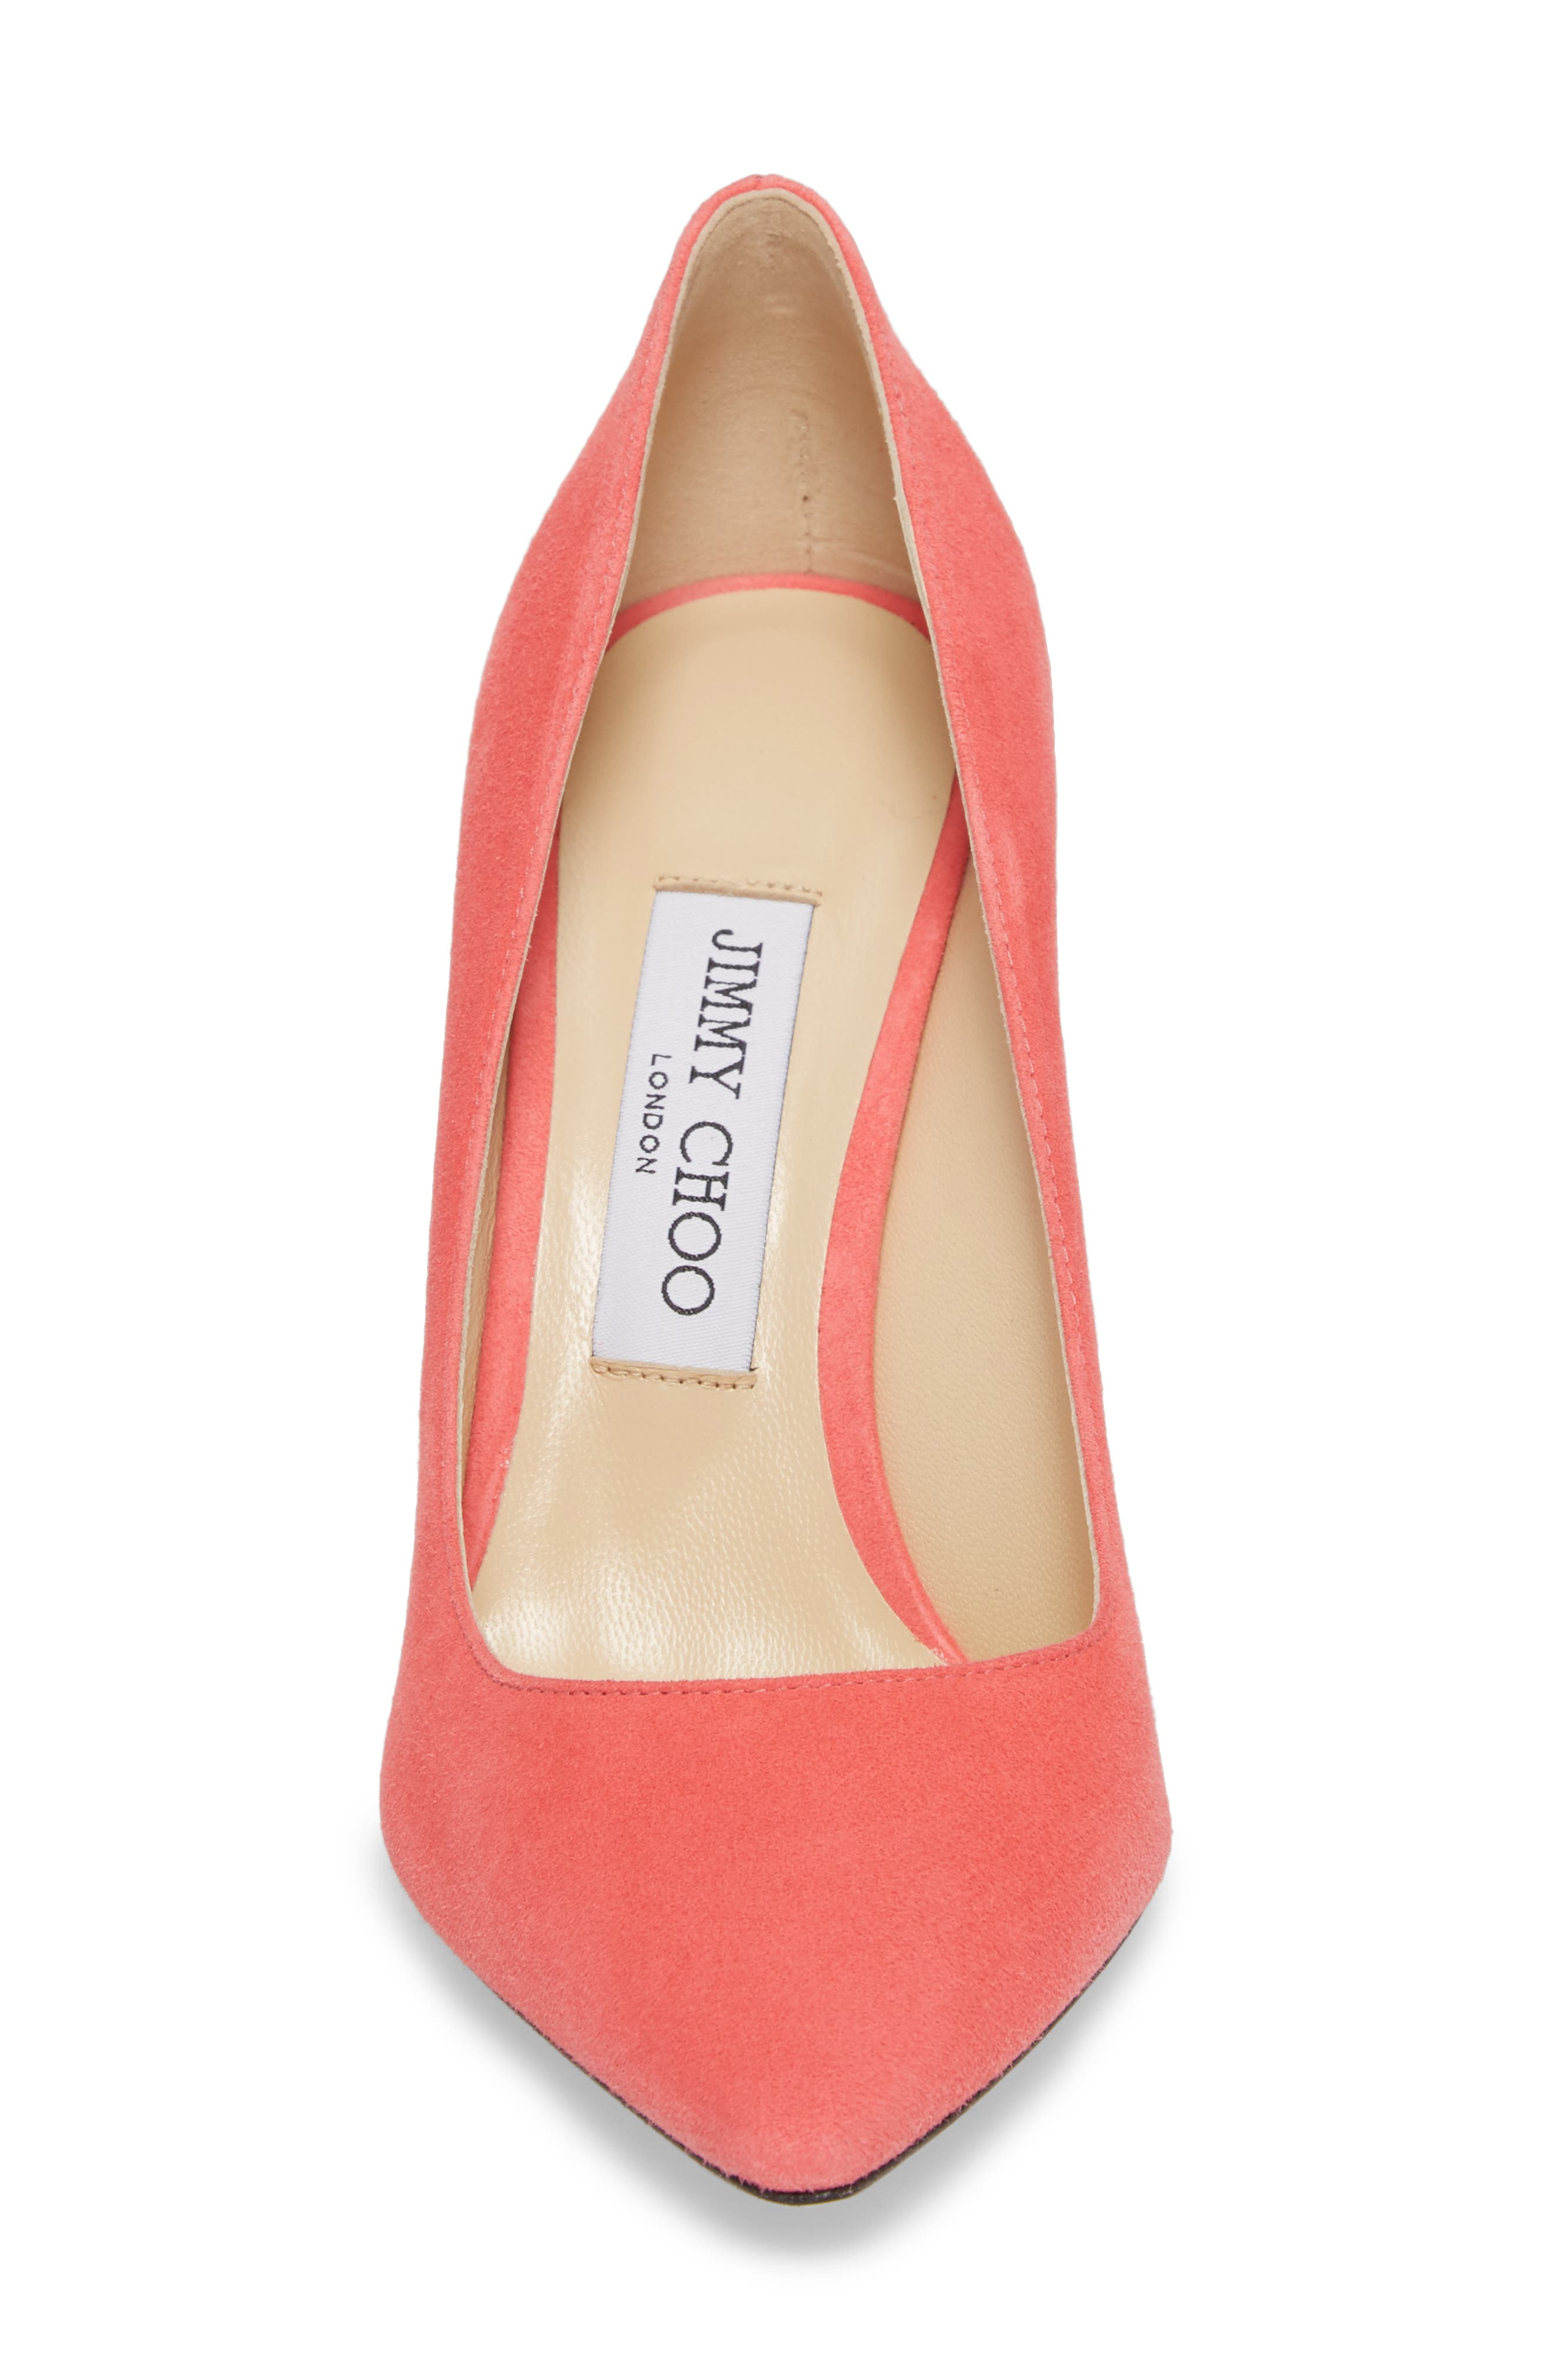 'Romy' Pointy Toe Pump,                             Alternate thumbnail 4, color,                             Flamingo Pink